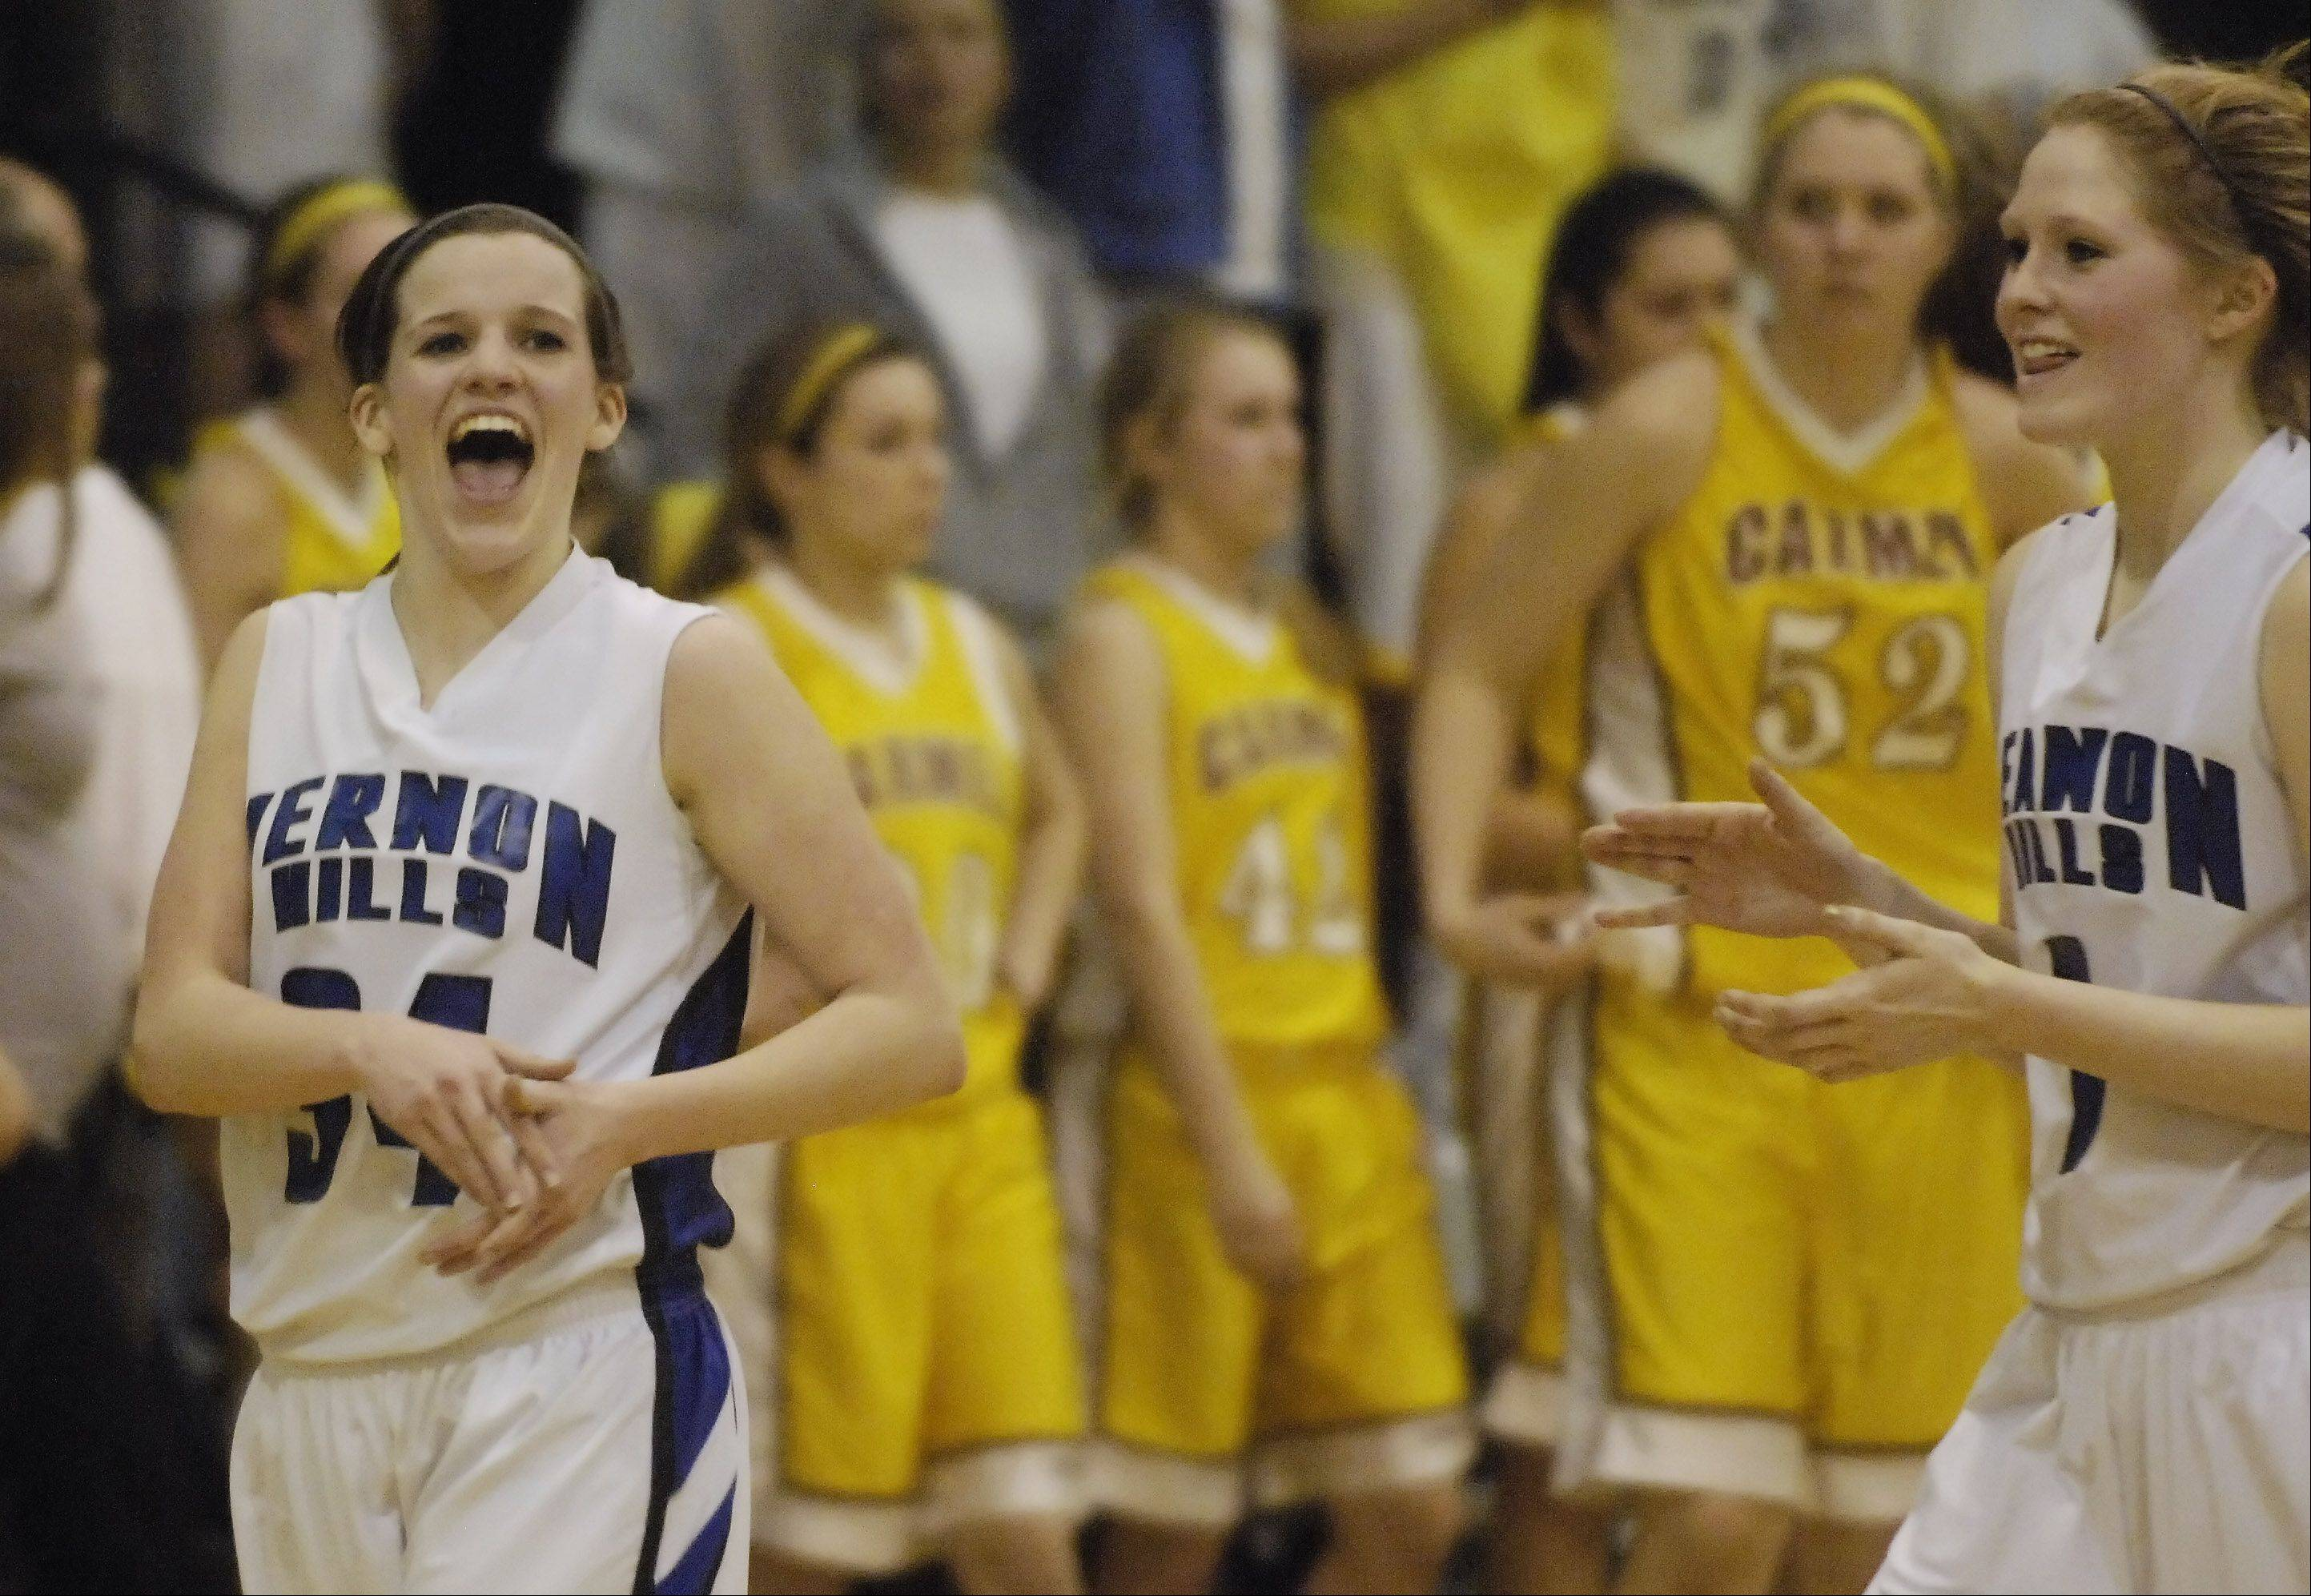 Vernon Hills' Abby Springer, left, and teammate Sydney Smith celebrate their team's victory over Carmel.